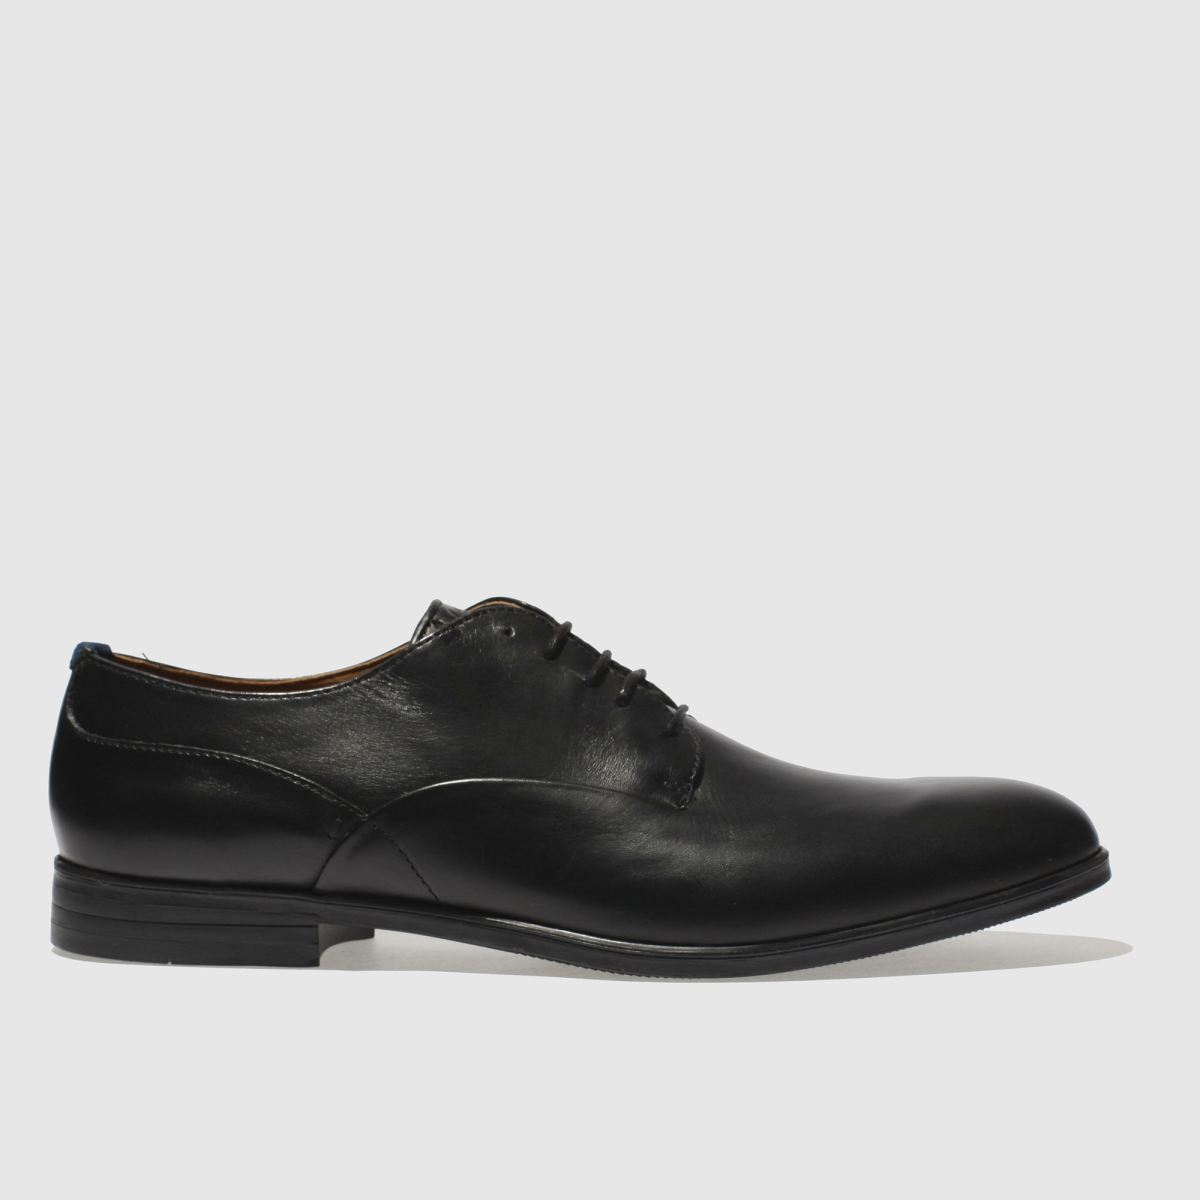 H By Hudson Black Axminster Shoes